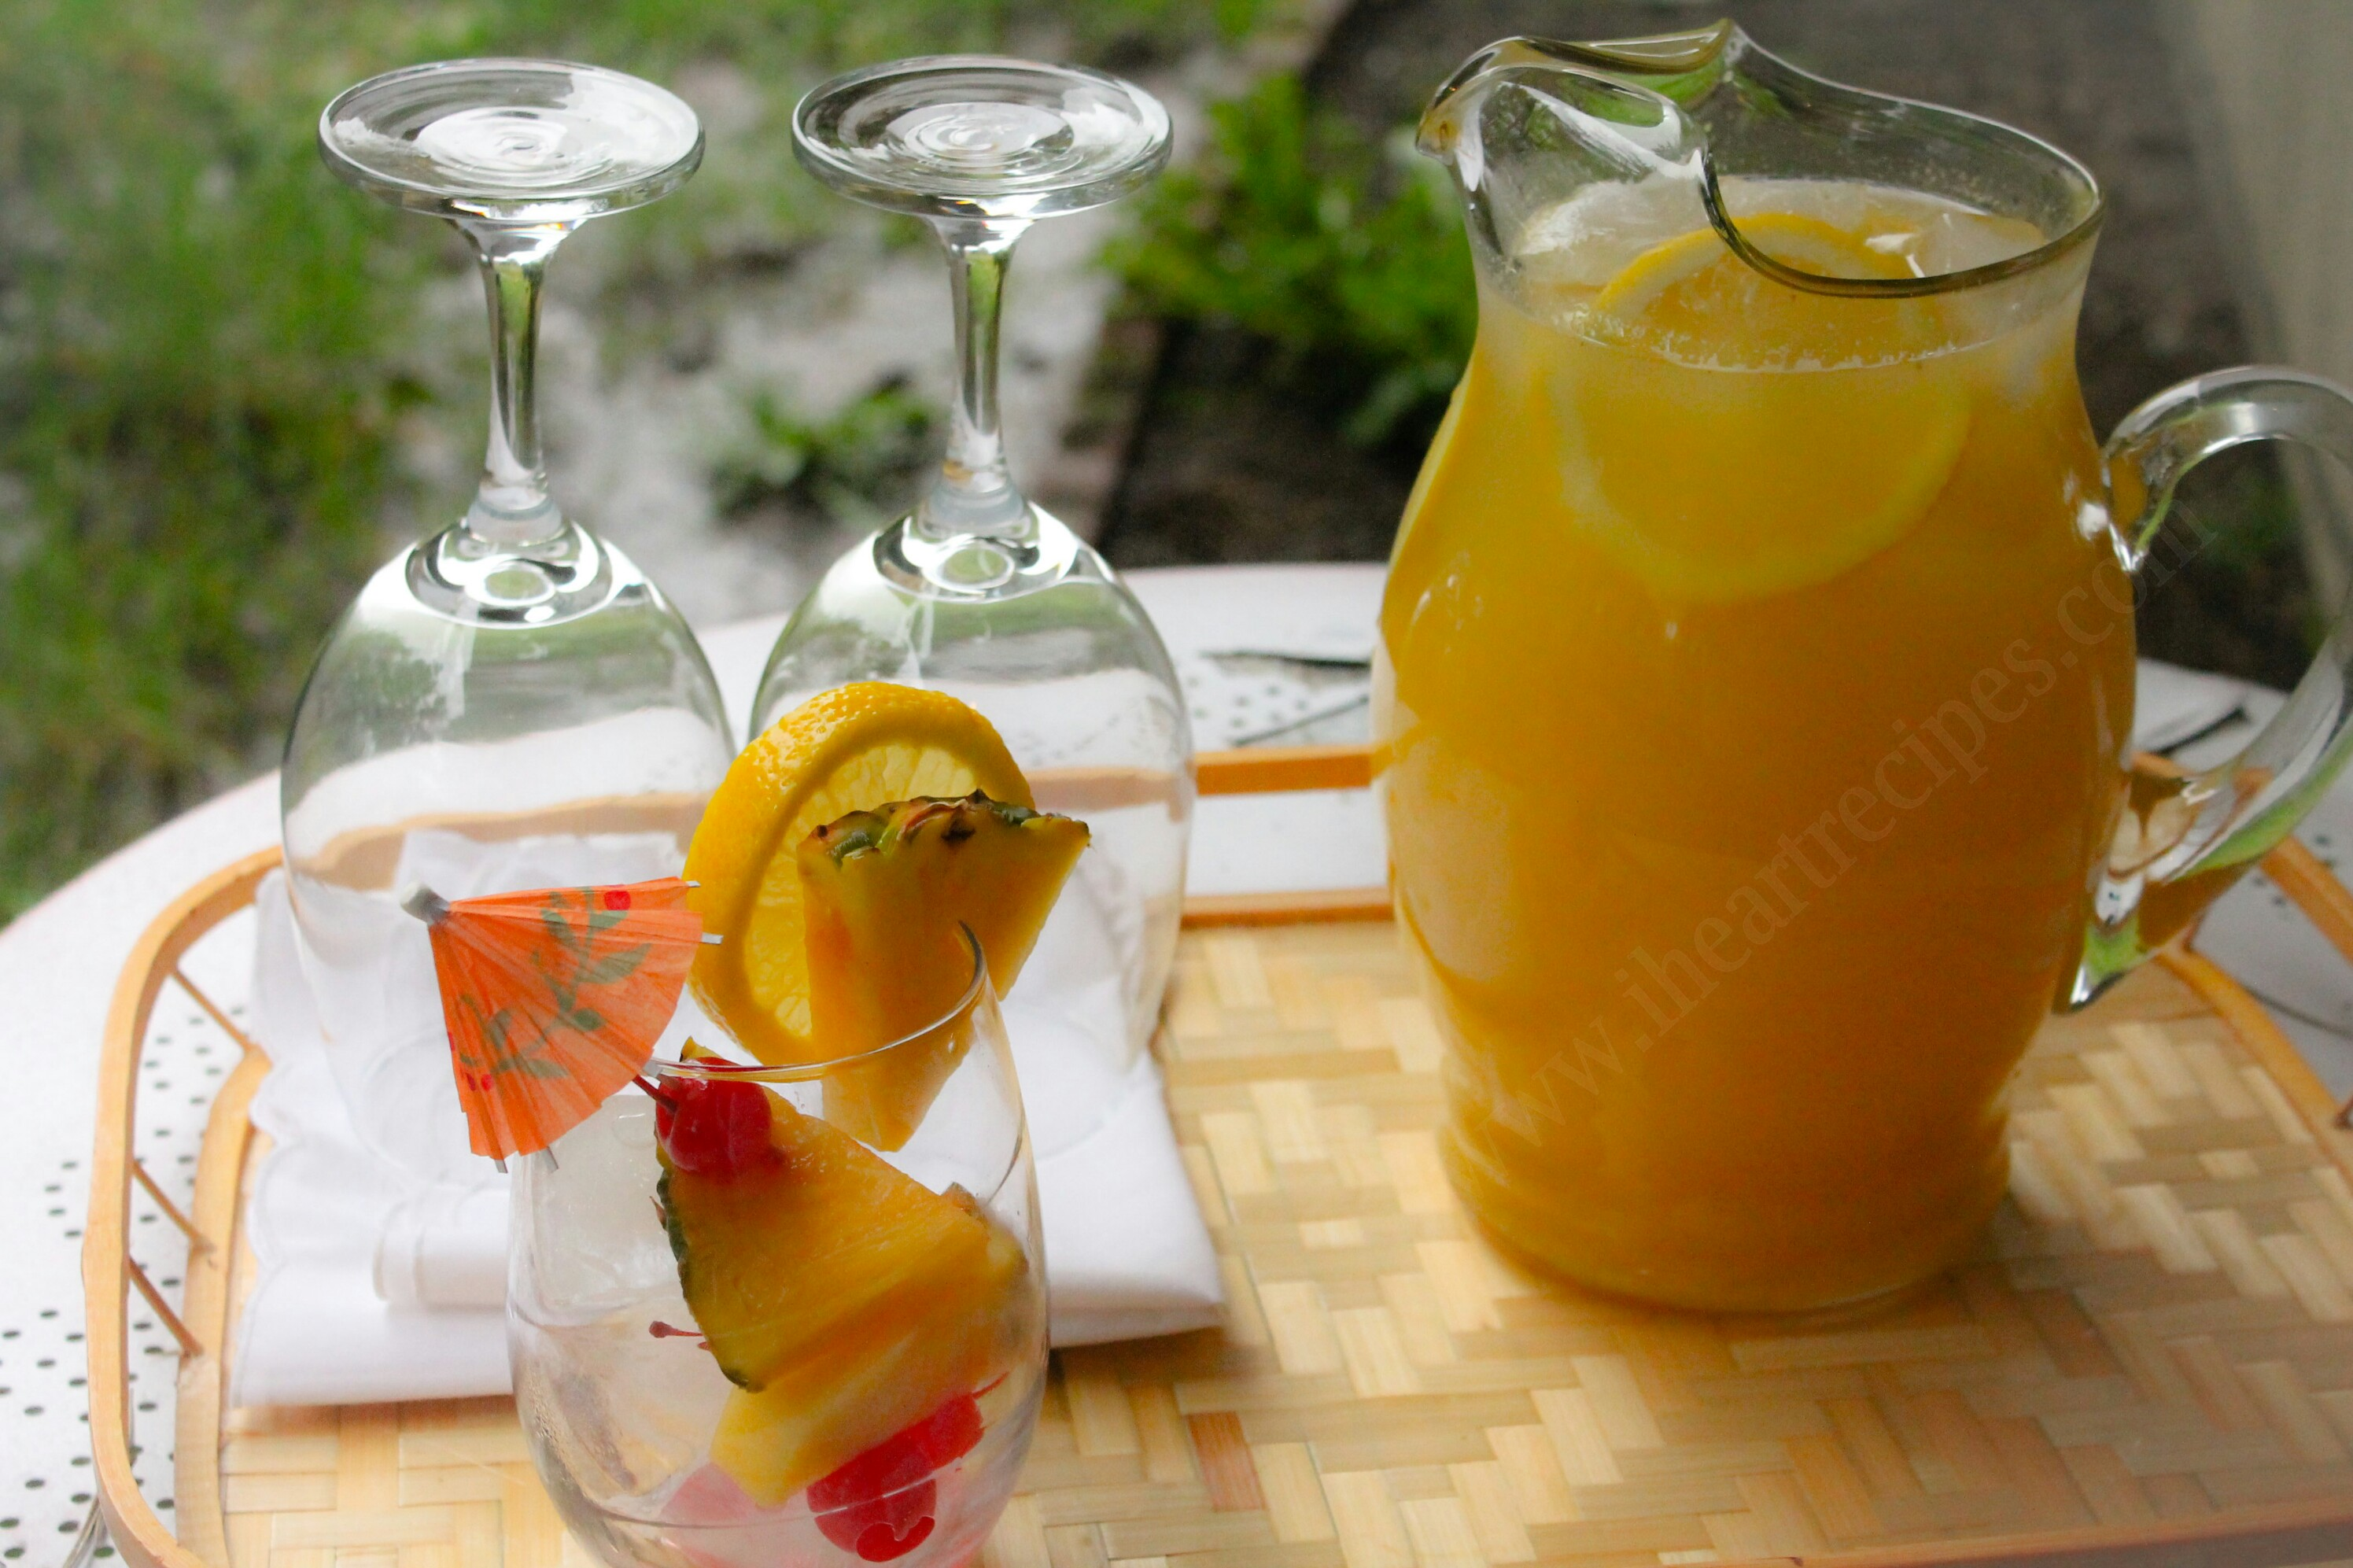 Feel like you're on a faraway vacation with this delicious mango lemonade